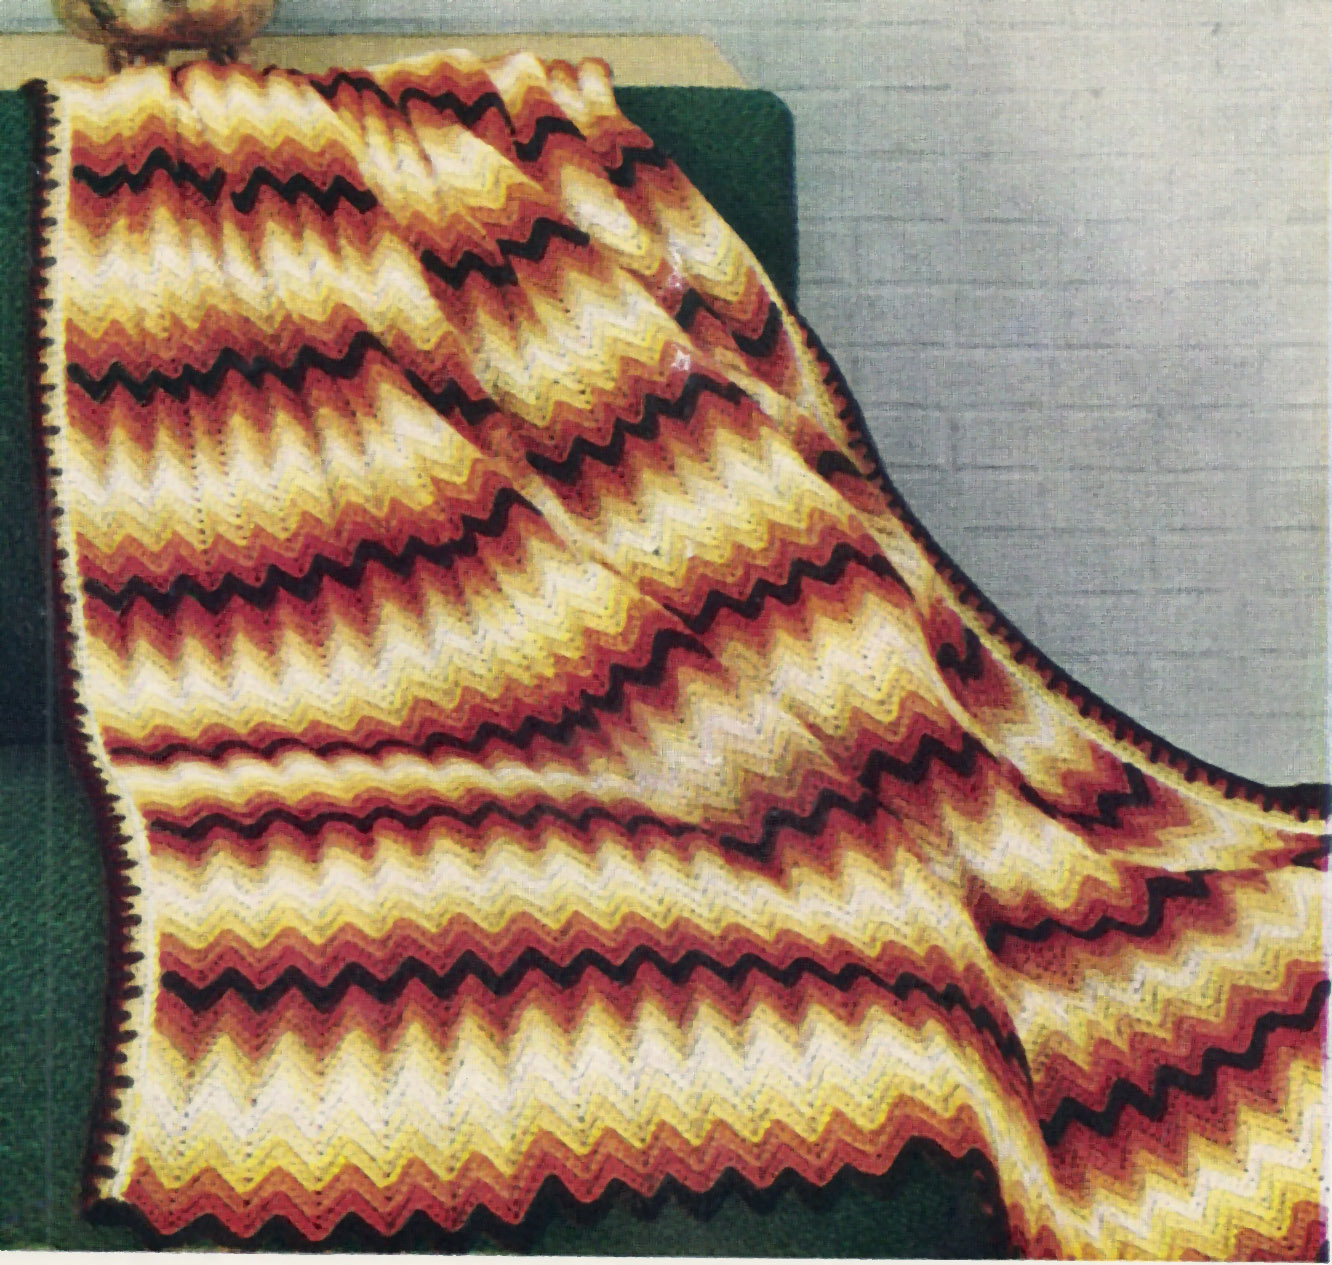 Crochet Afghan Patterns Chevron : Todays Treasure Shop Talk: Crochet Afghan Patterns Coats ...